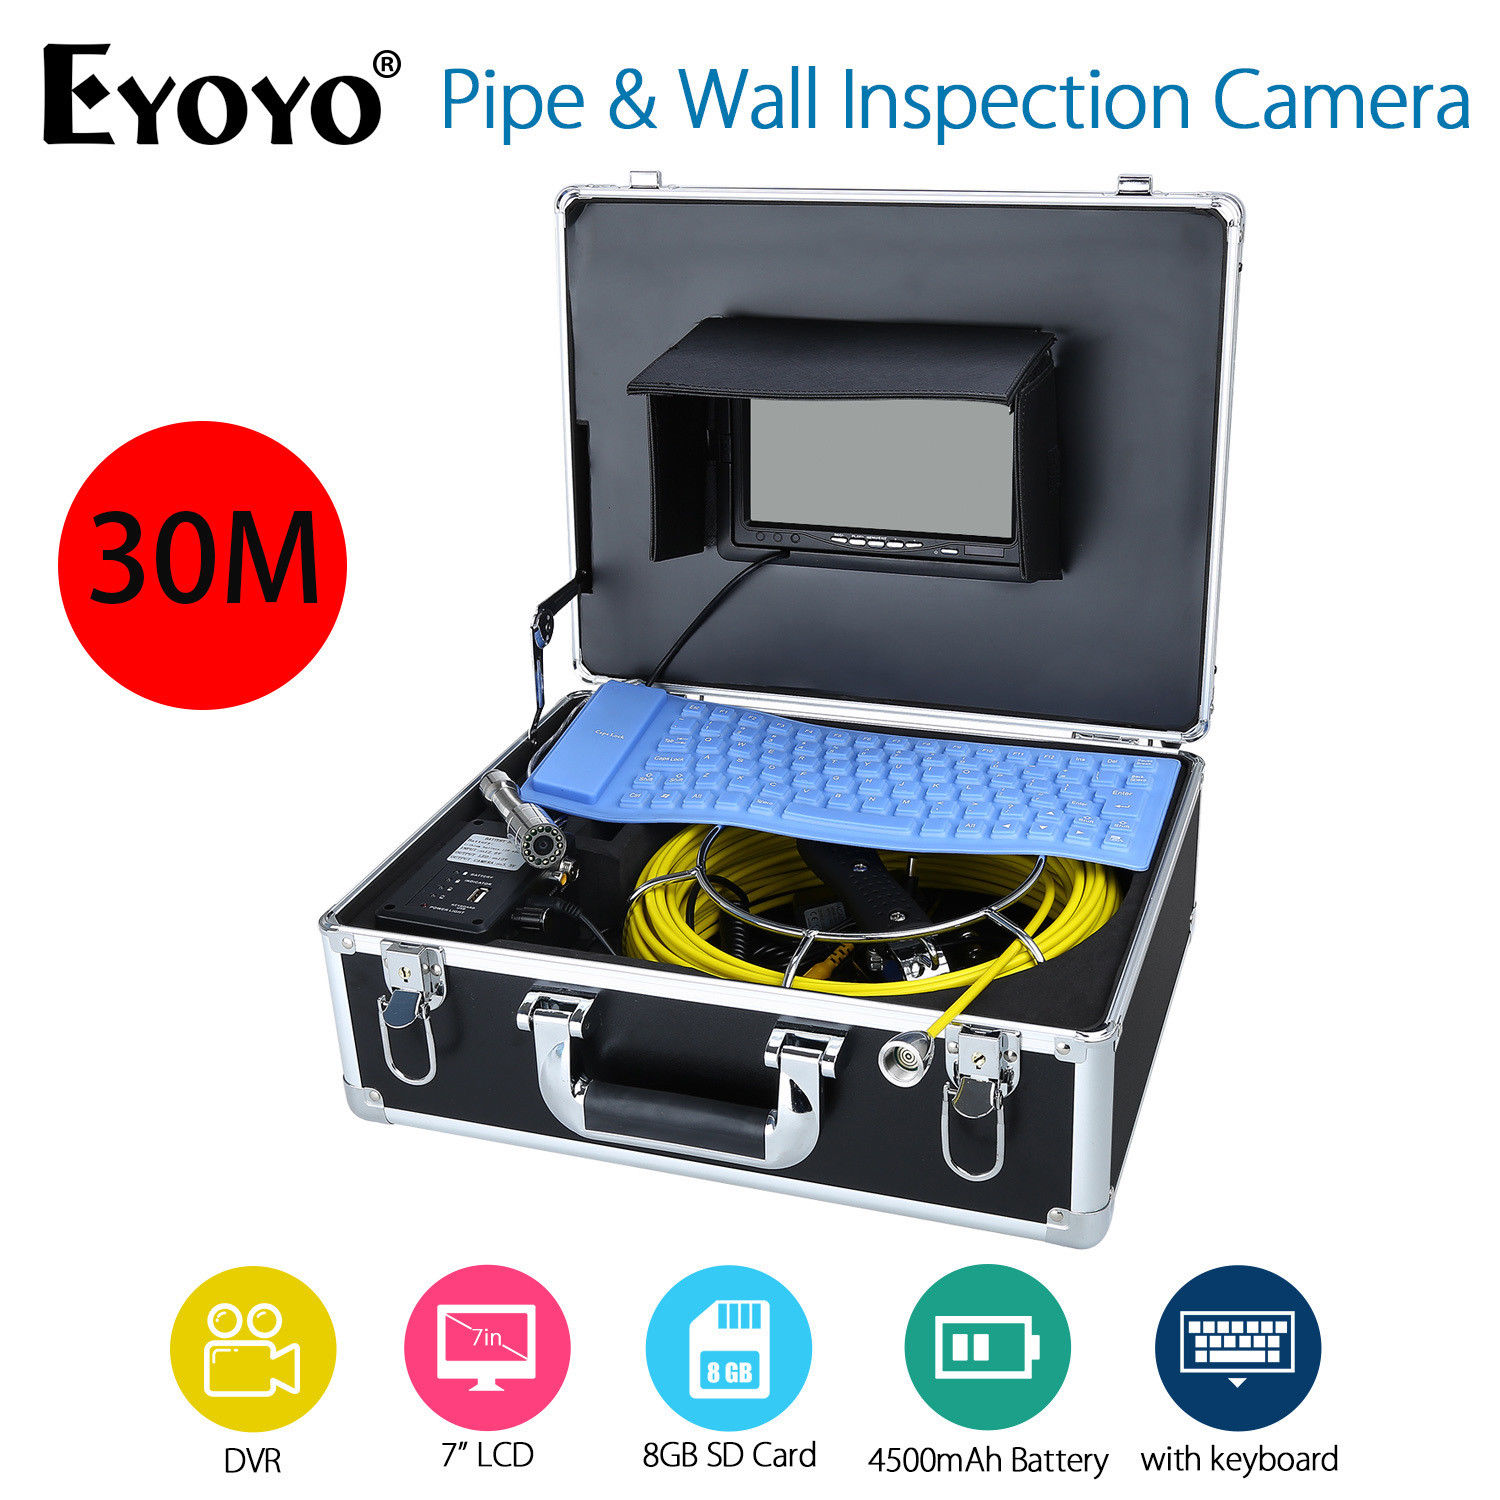 EYOYO 7 LCD Screen CMOS 30M HD 1000TVL Sewer Drain Camera Pipe Wall Inspection Endoscope With Keyboard DVR Recording 8GB Card eyoyo 30m sewer video recording camera 7 lcd screen drain pipe inspection dvr 12 led with battery with aluminum case